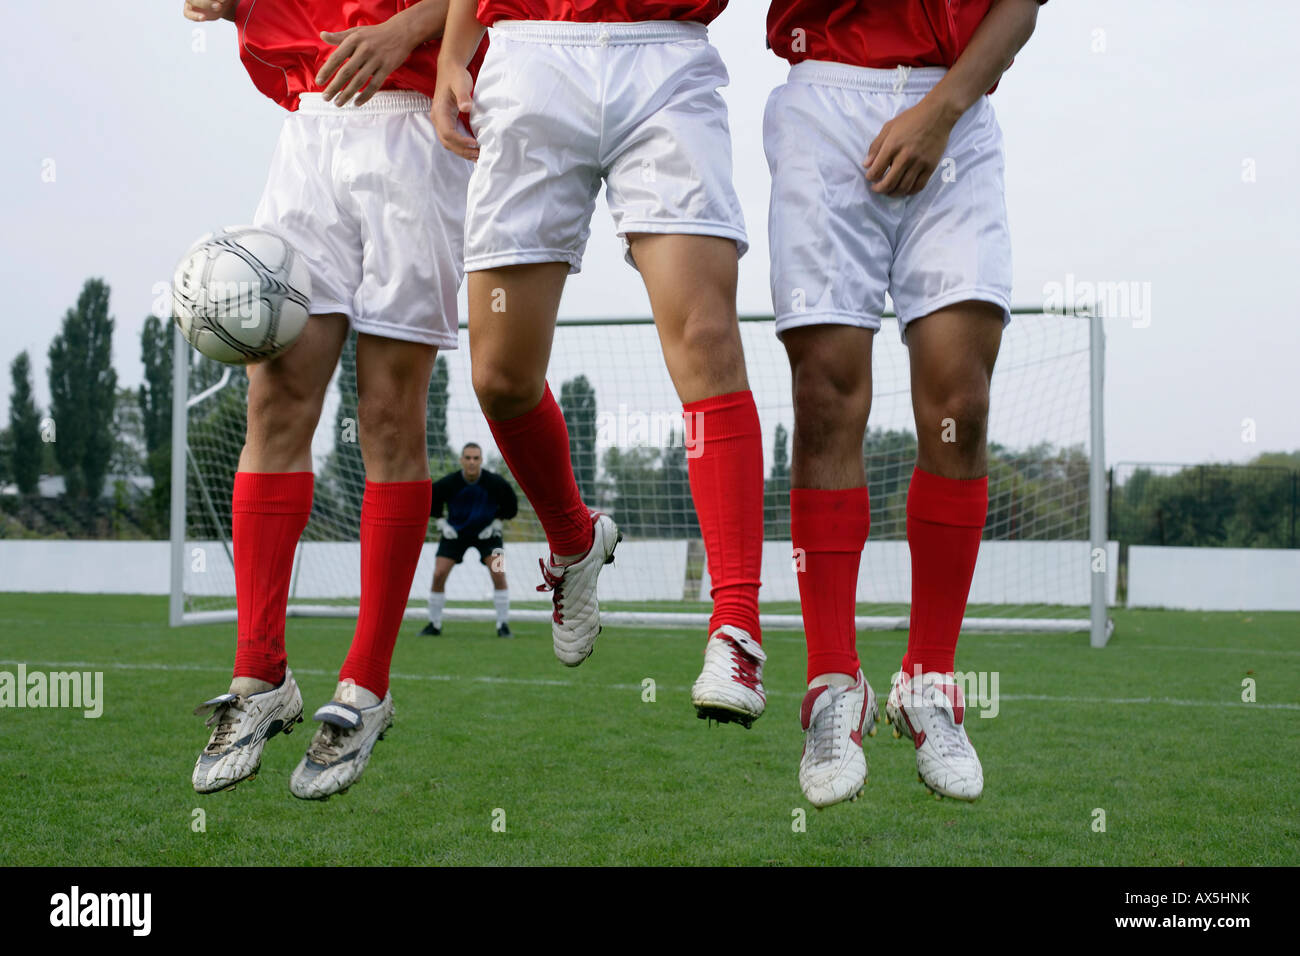 Soccer players forming a wall - Stock Image